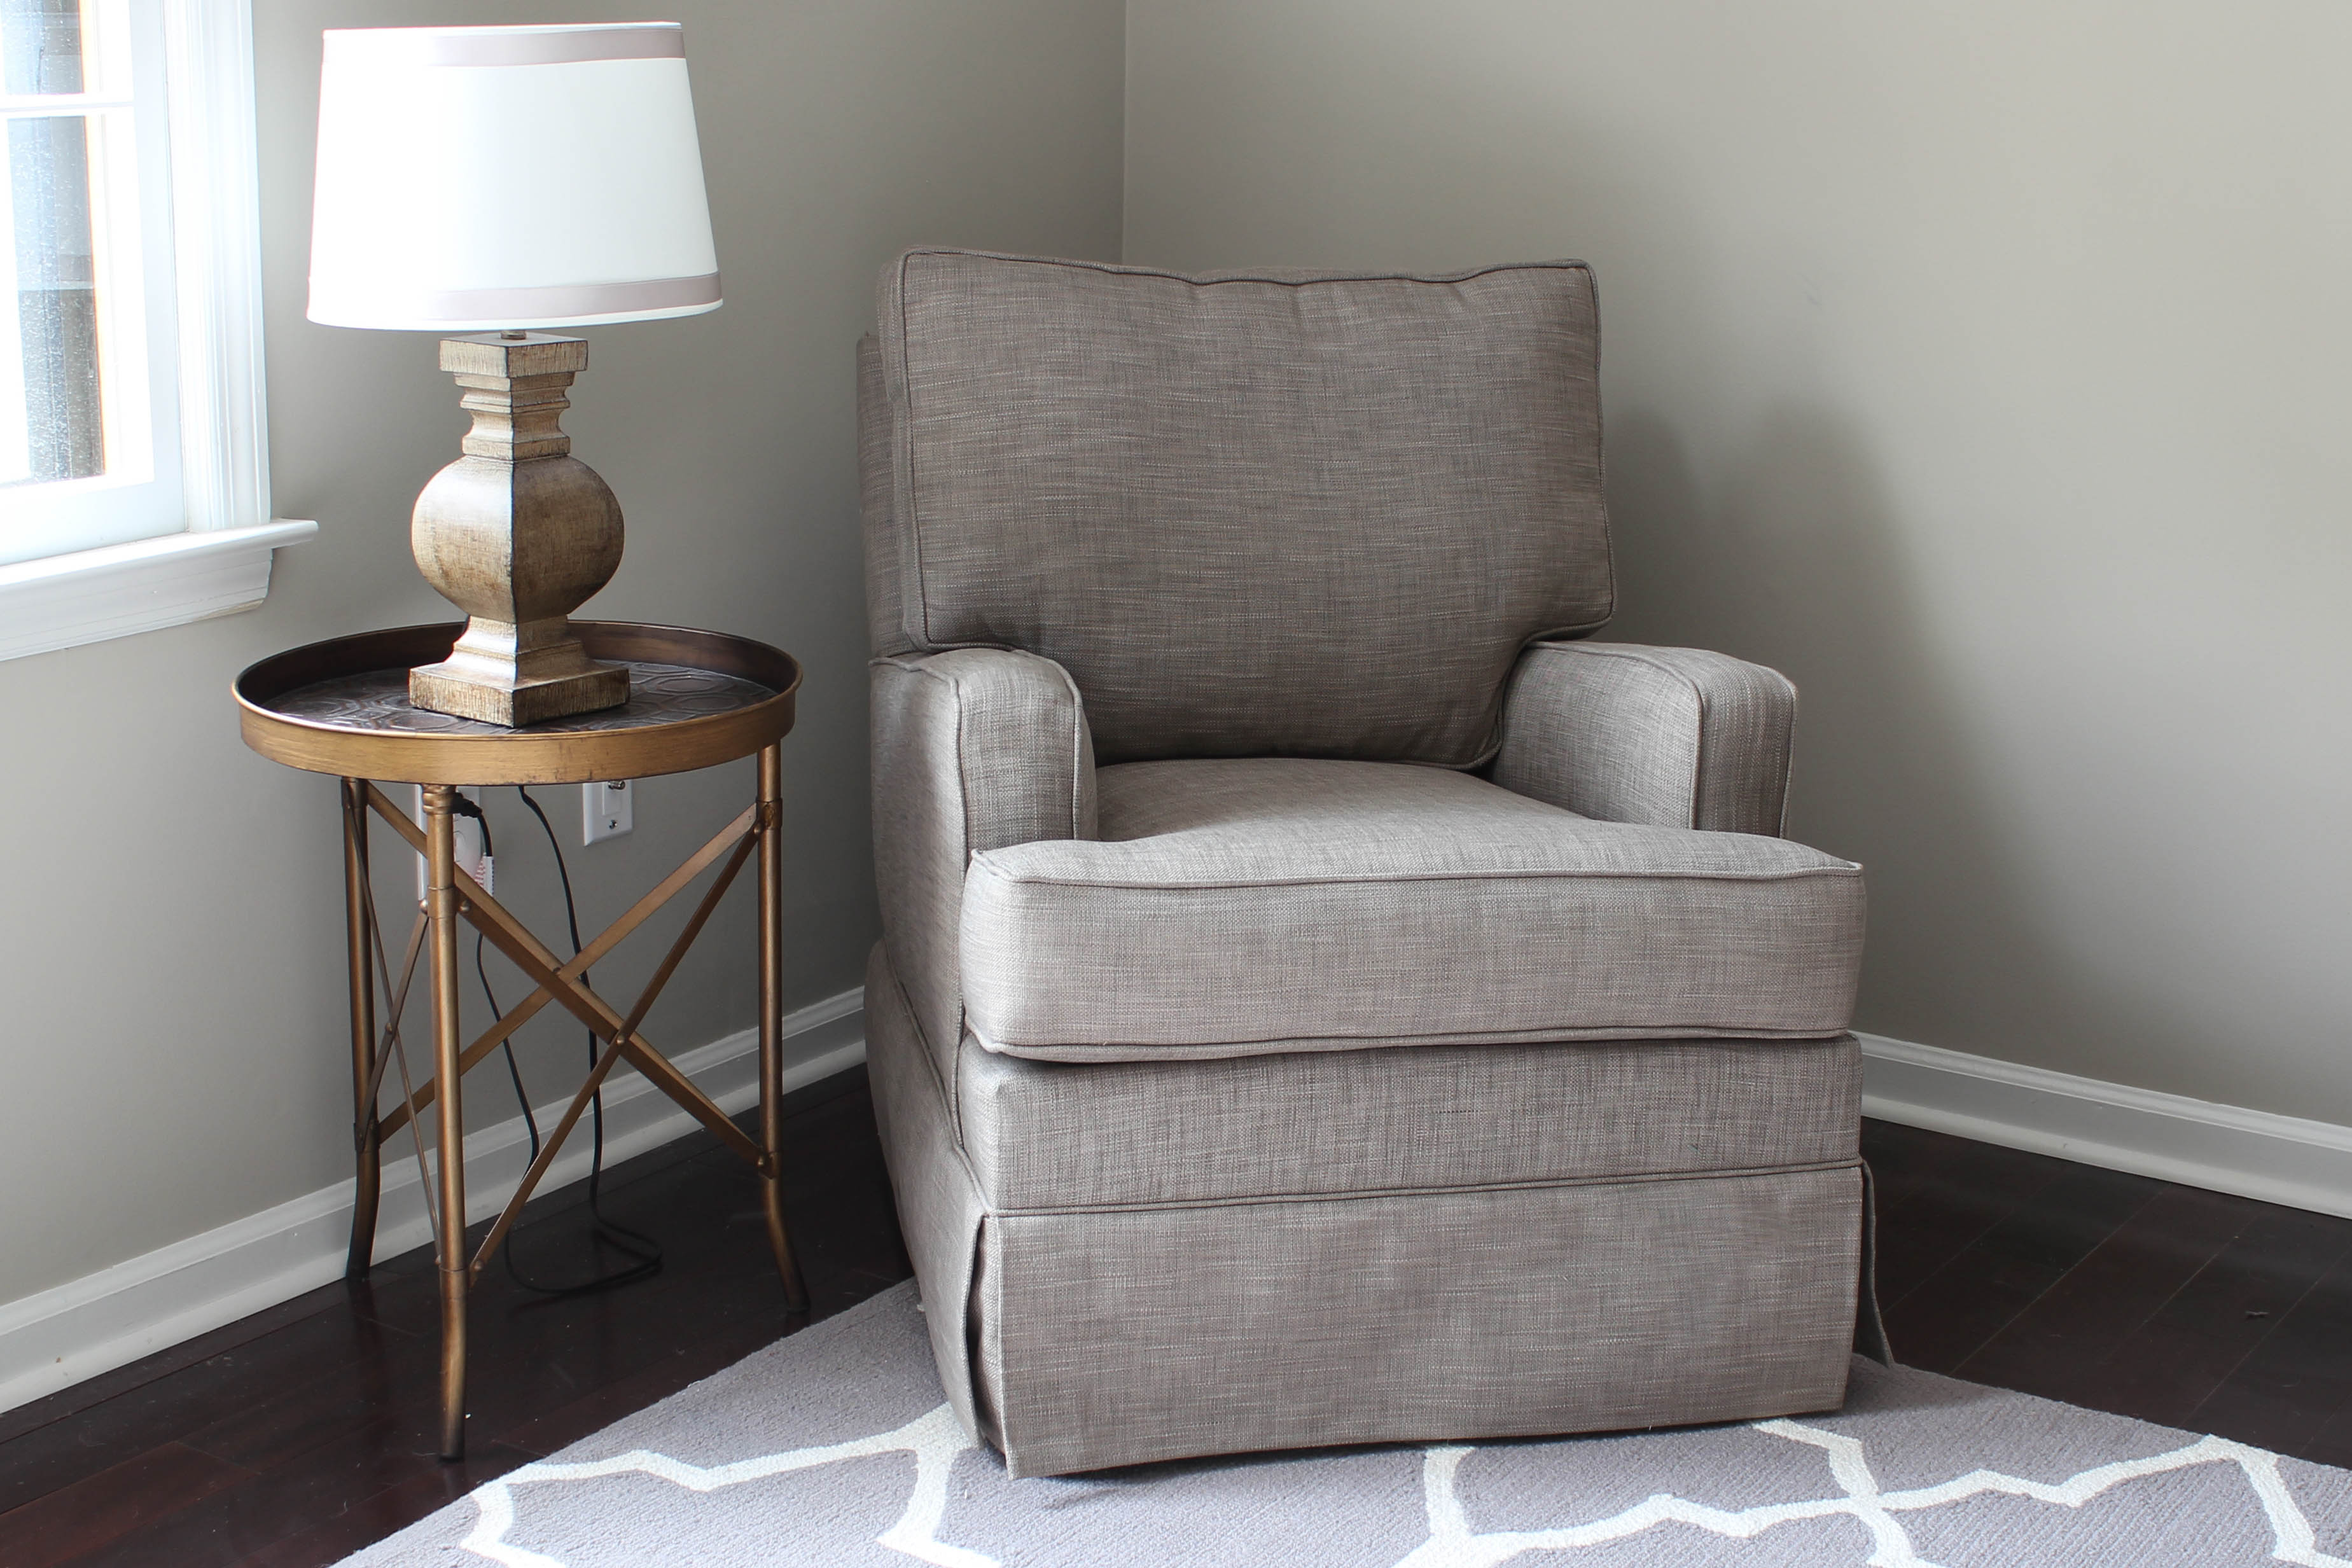 Classy fabric upholstered glider rocker with armchairs and wooden laminate floor for living room